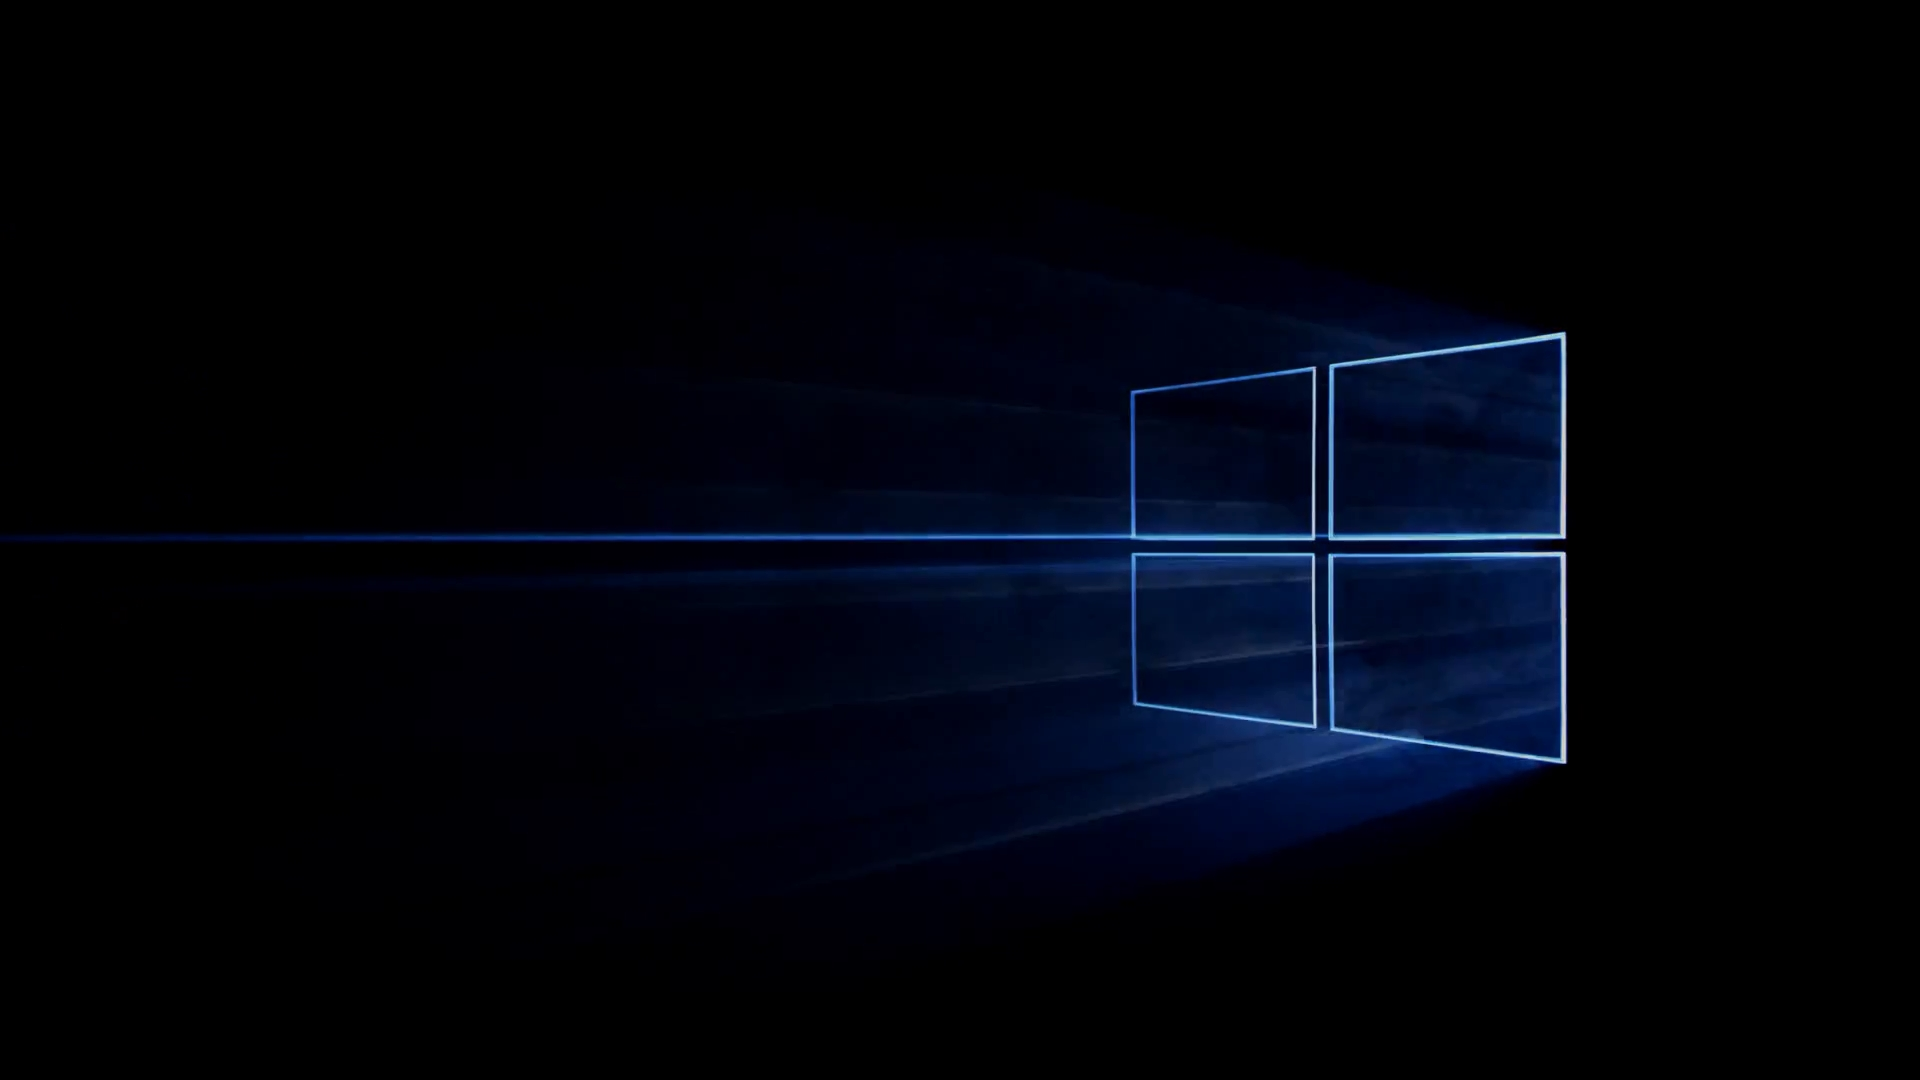 Windows 10 azul